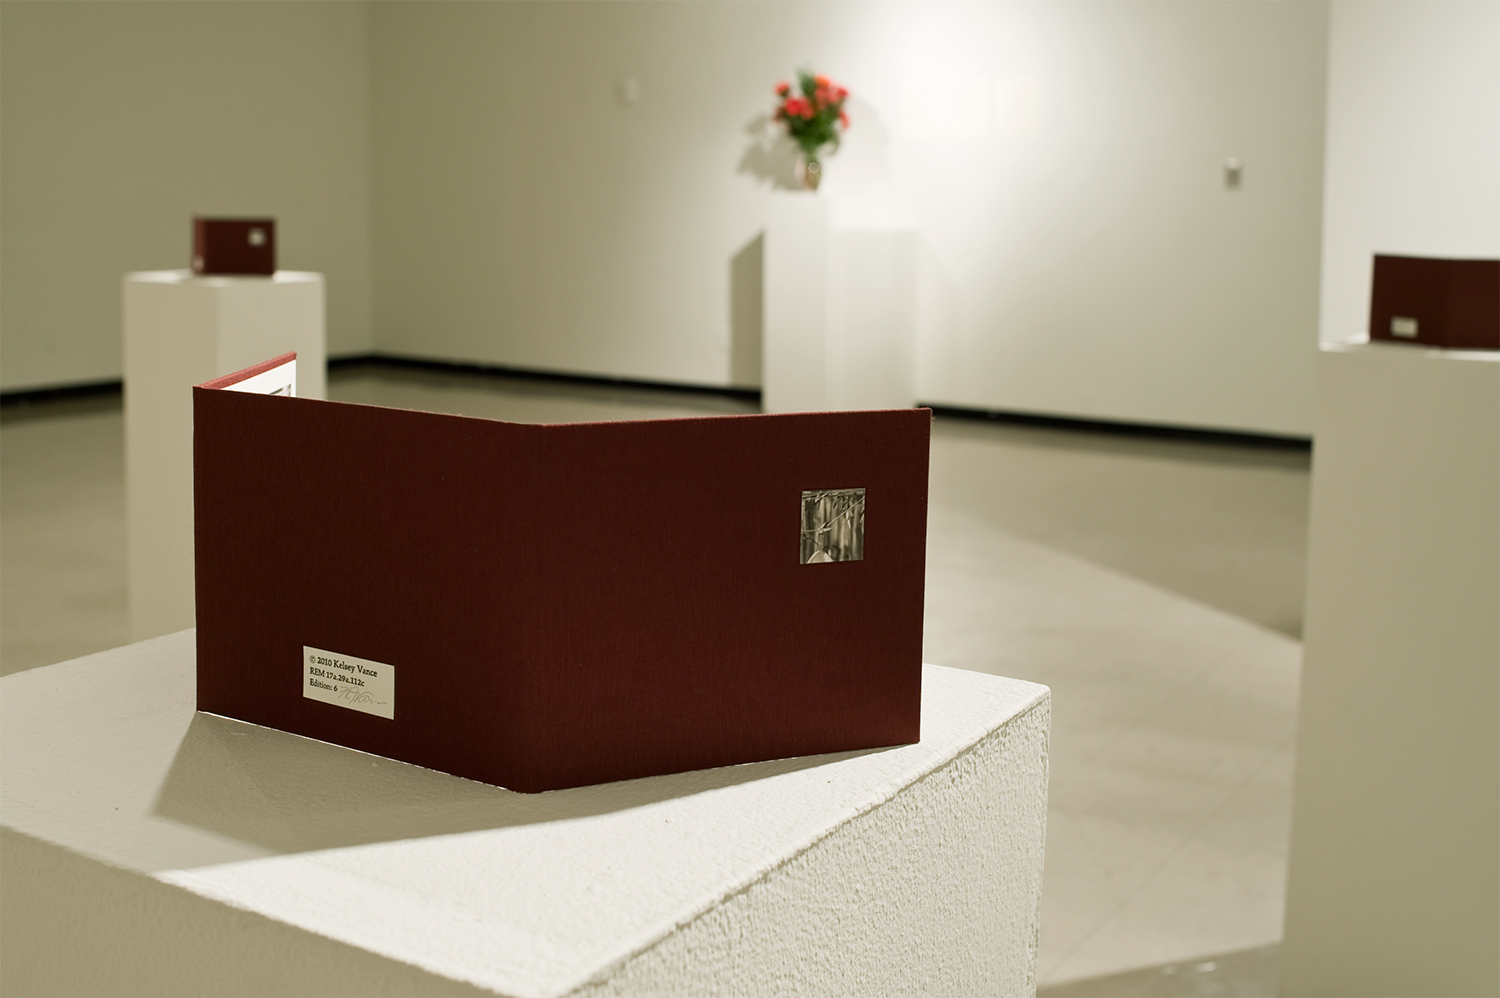 Installation view from  reminiscence  at Harry Wood Gallery in Tempe, Arizona.